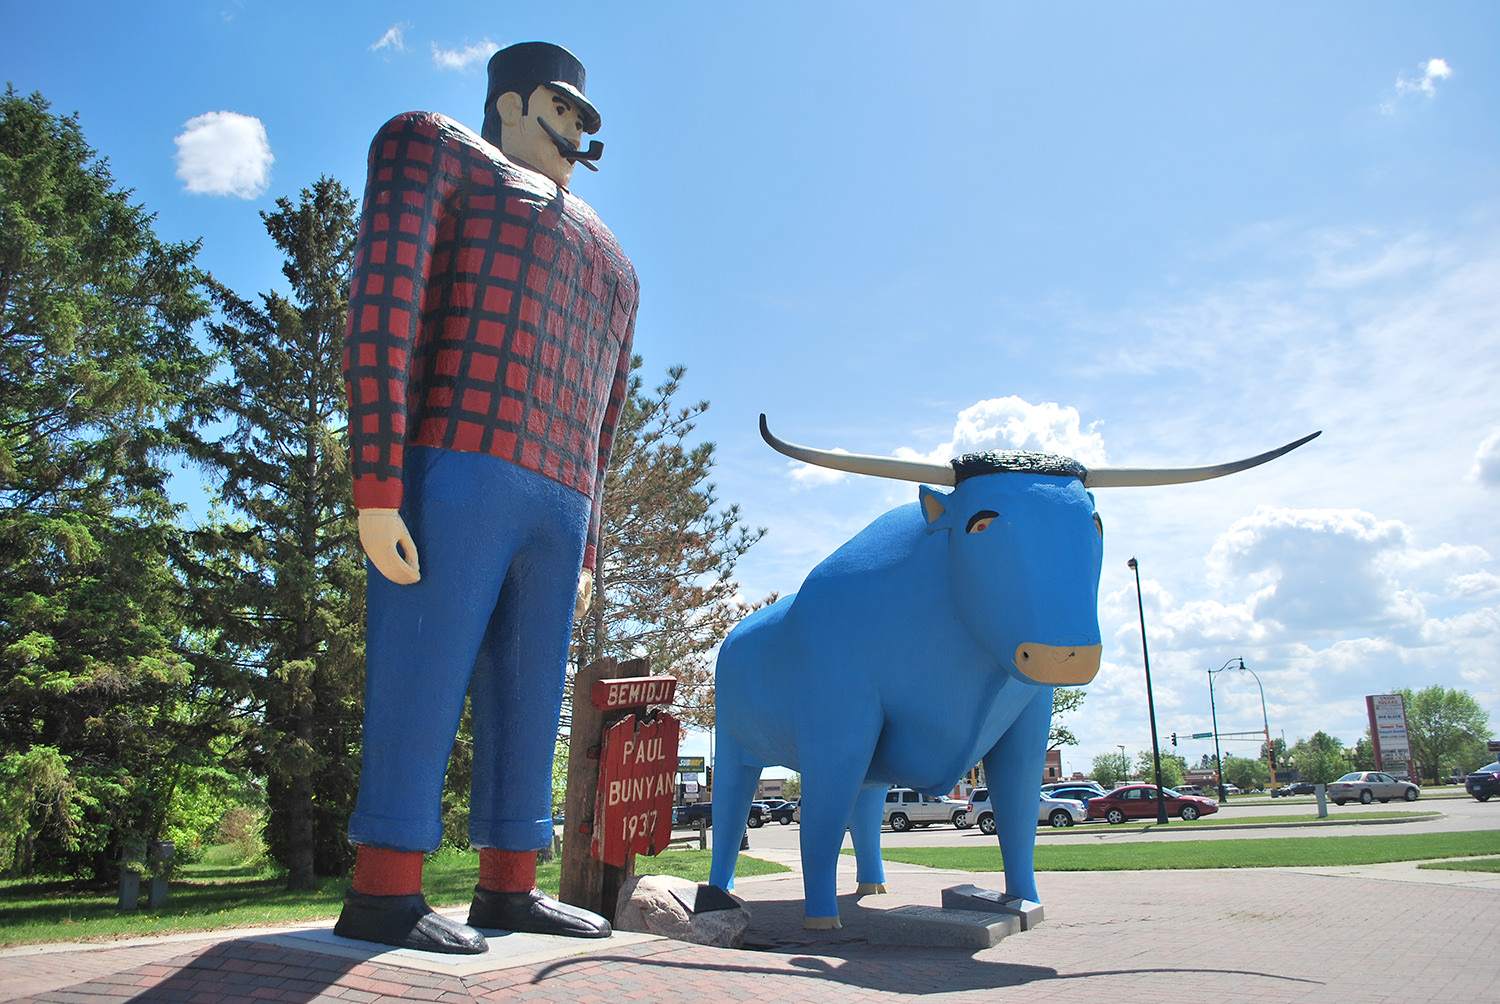 Paul Bunyan and Babe the Blue Ox in Bemidji, Minnesota, erected in 1936